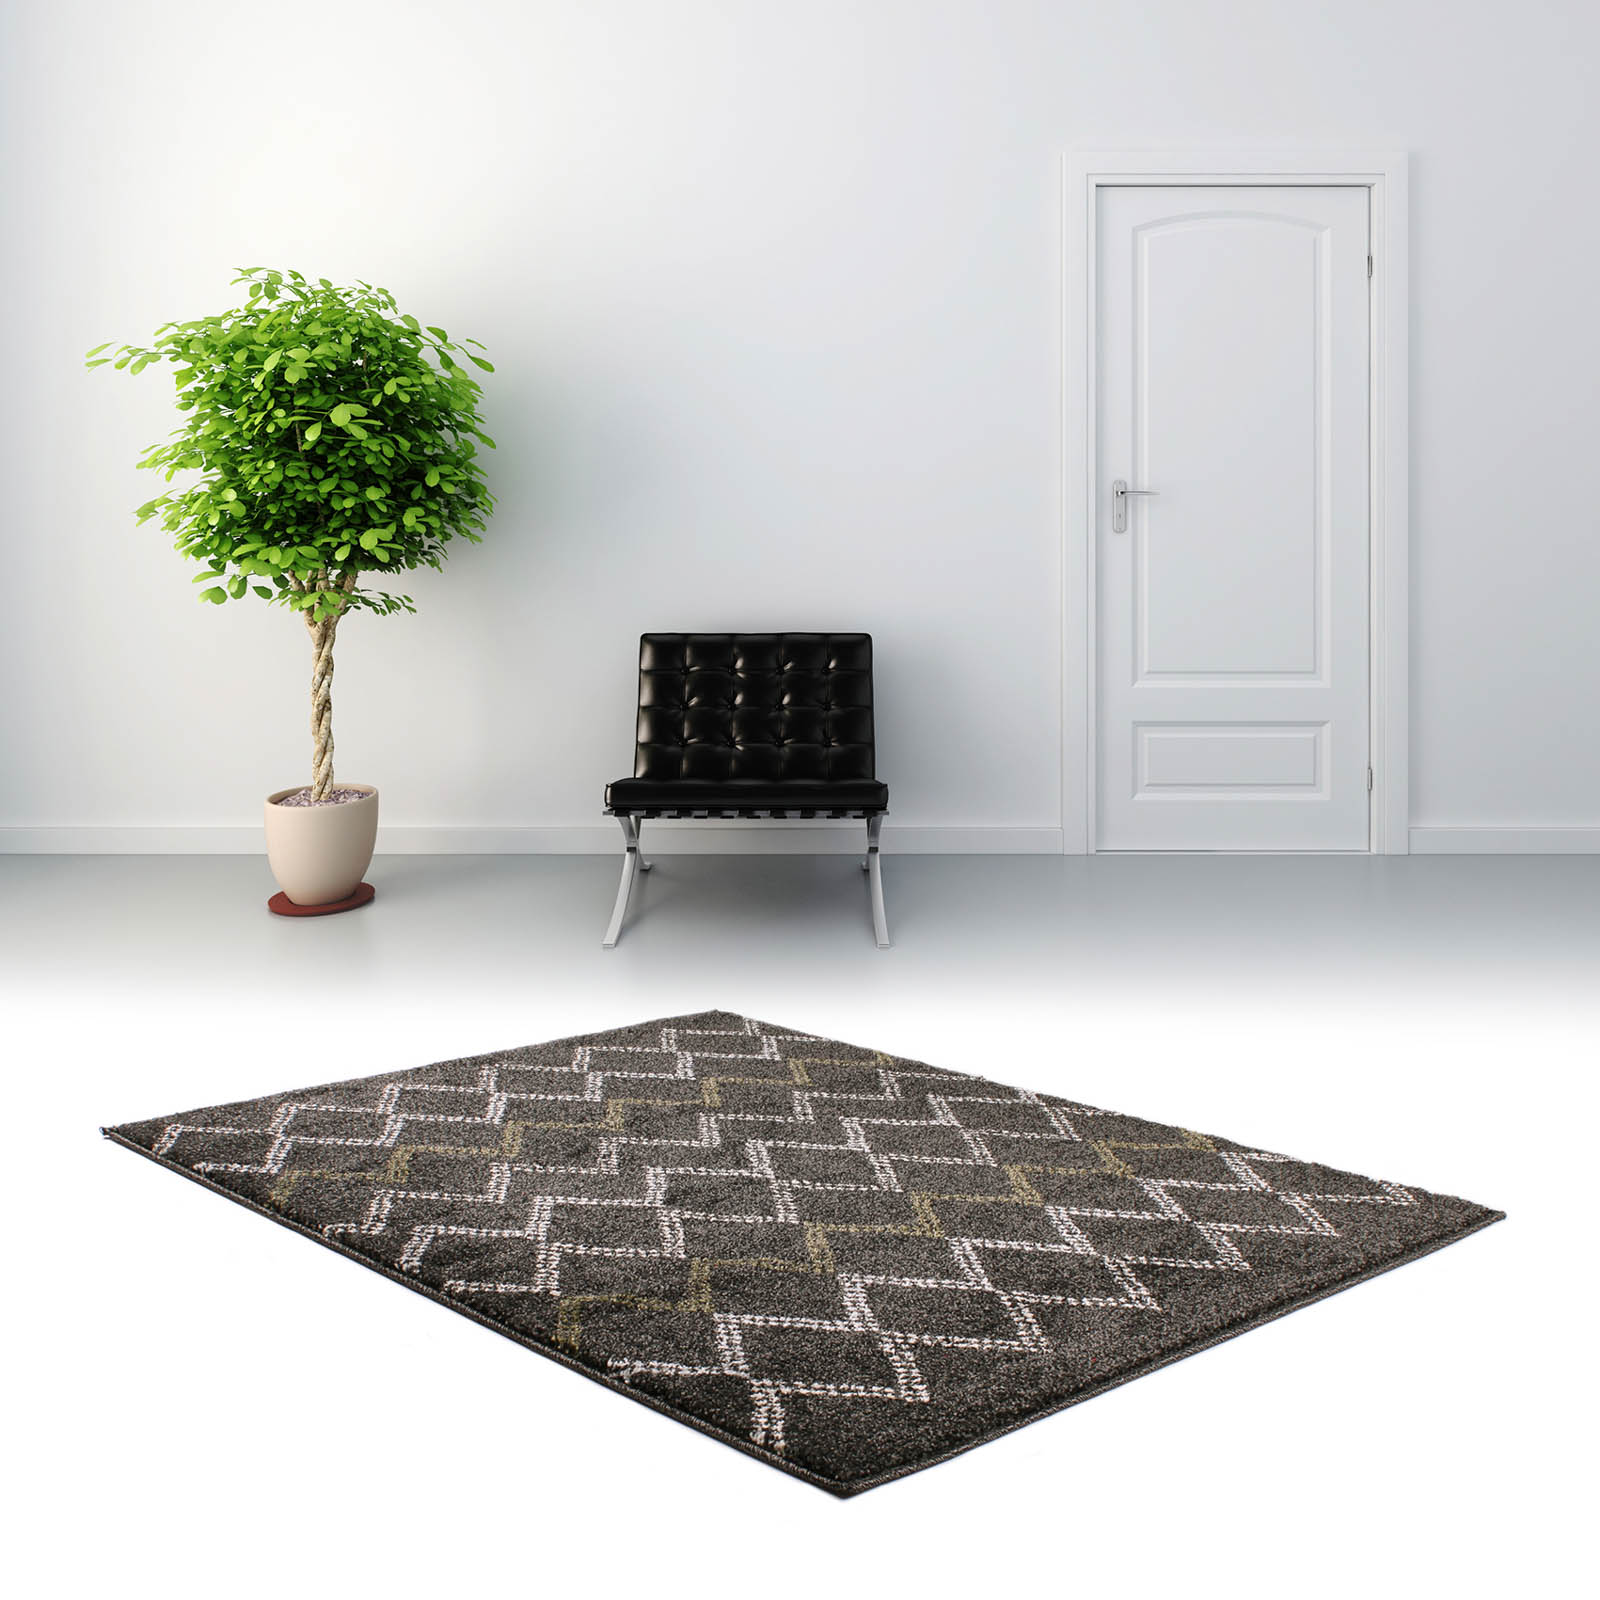 Marrakesh Rugs 2651 in Black and Green